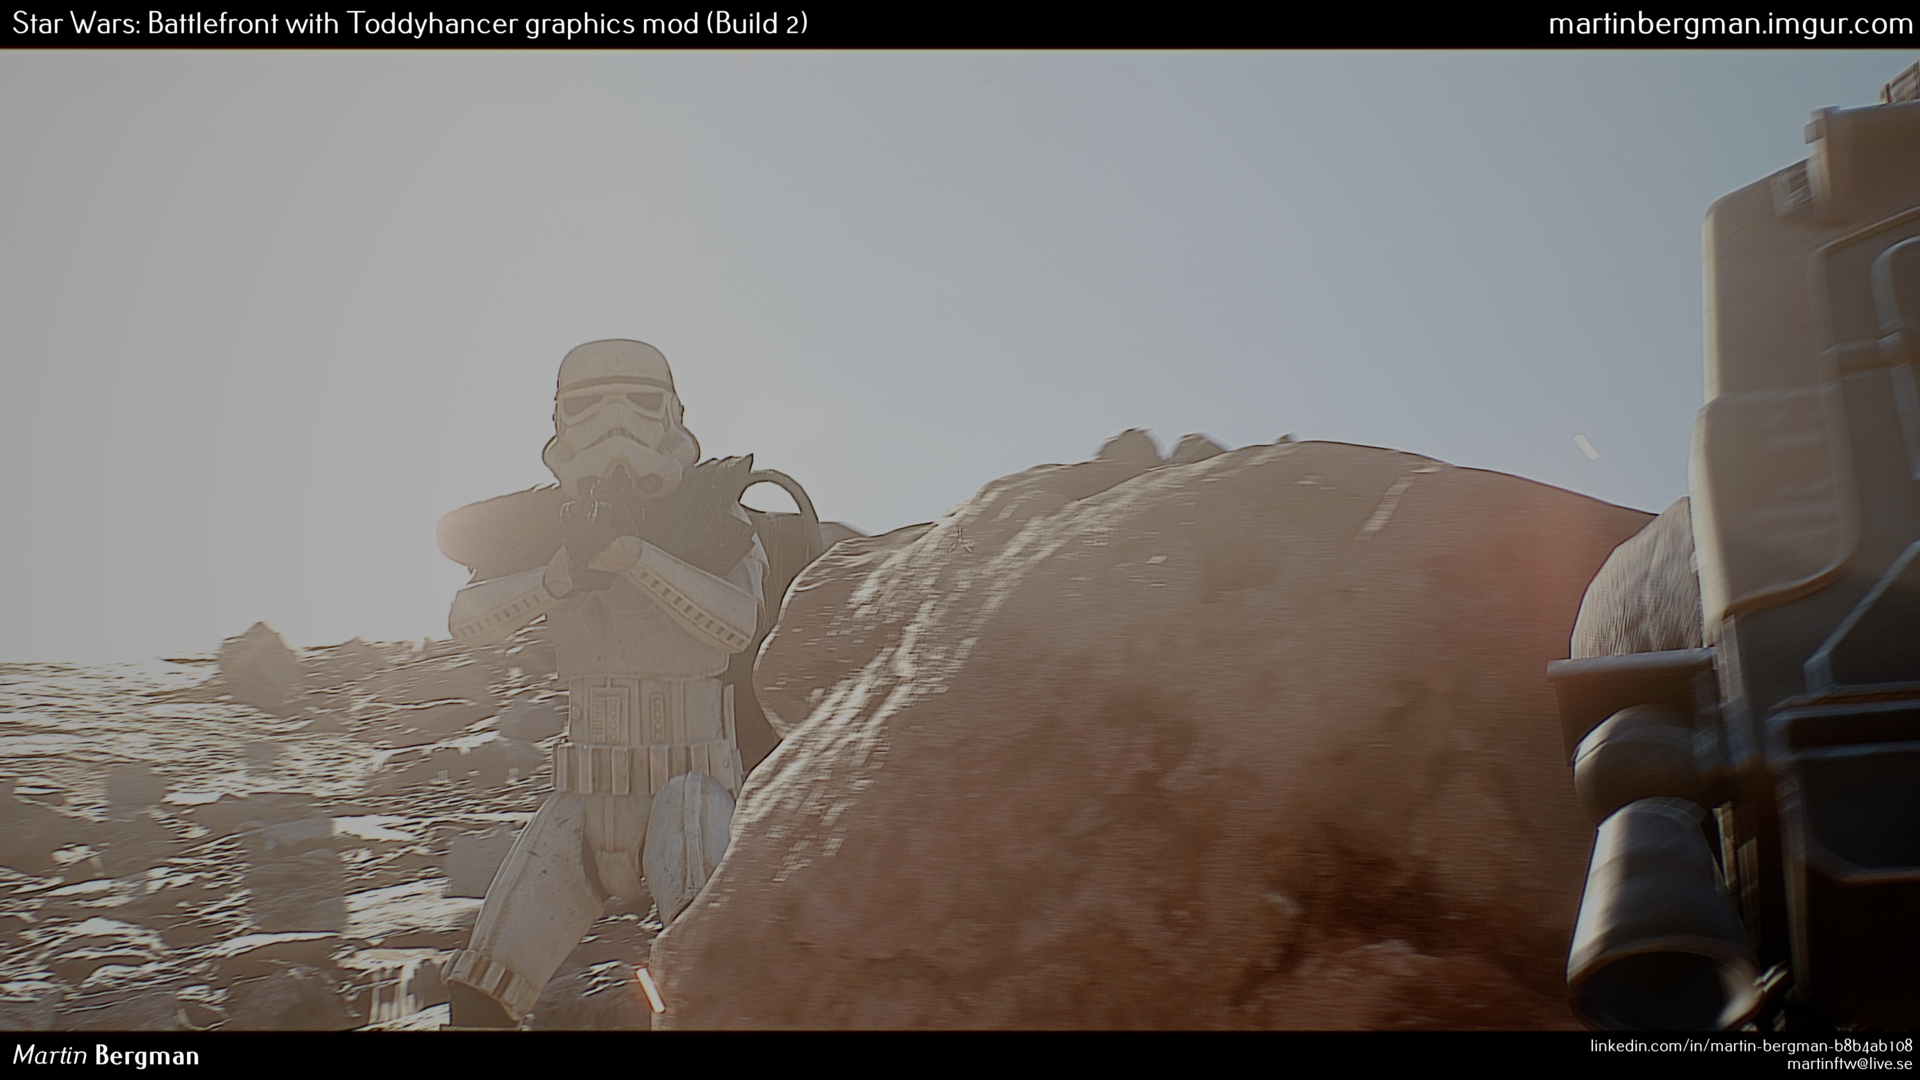 Photo of Star Wars Battlefront modat arata mai bine ca filmul!